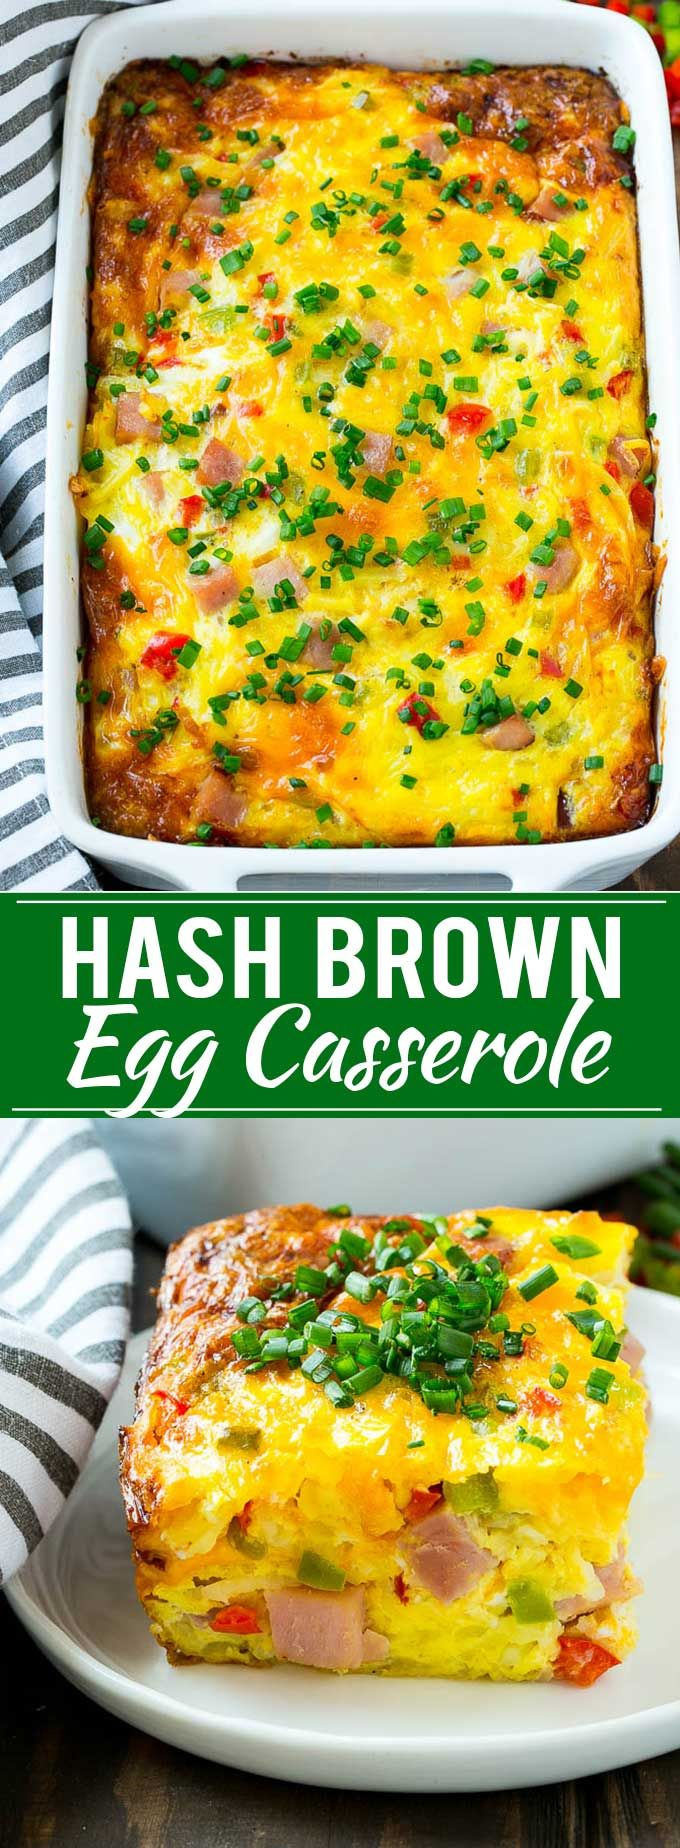 Hash Brown Egg Casserole Recipe #ad